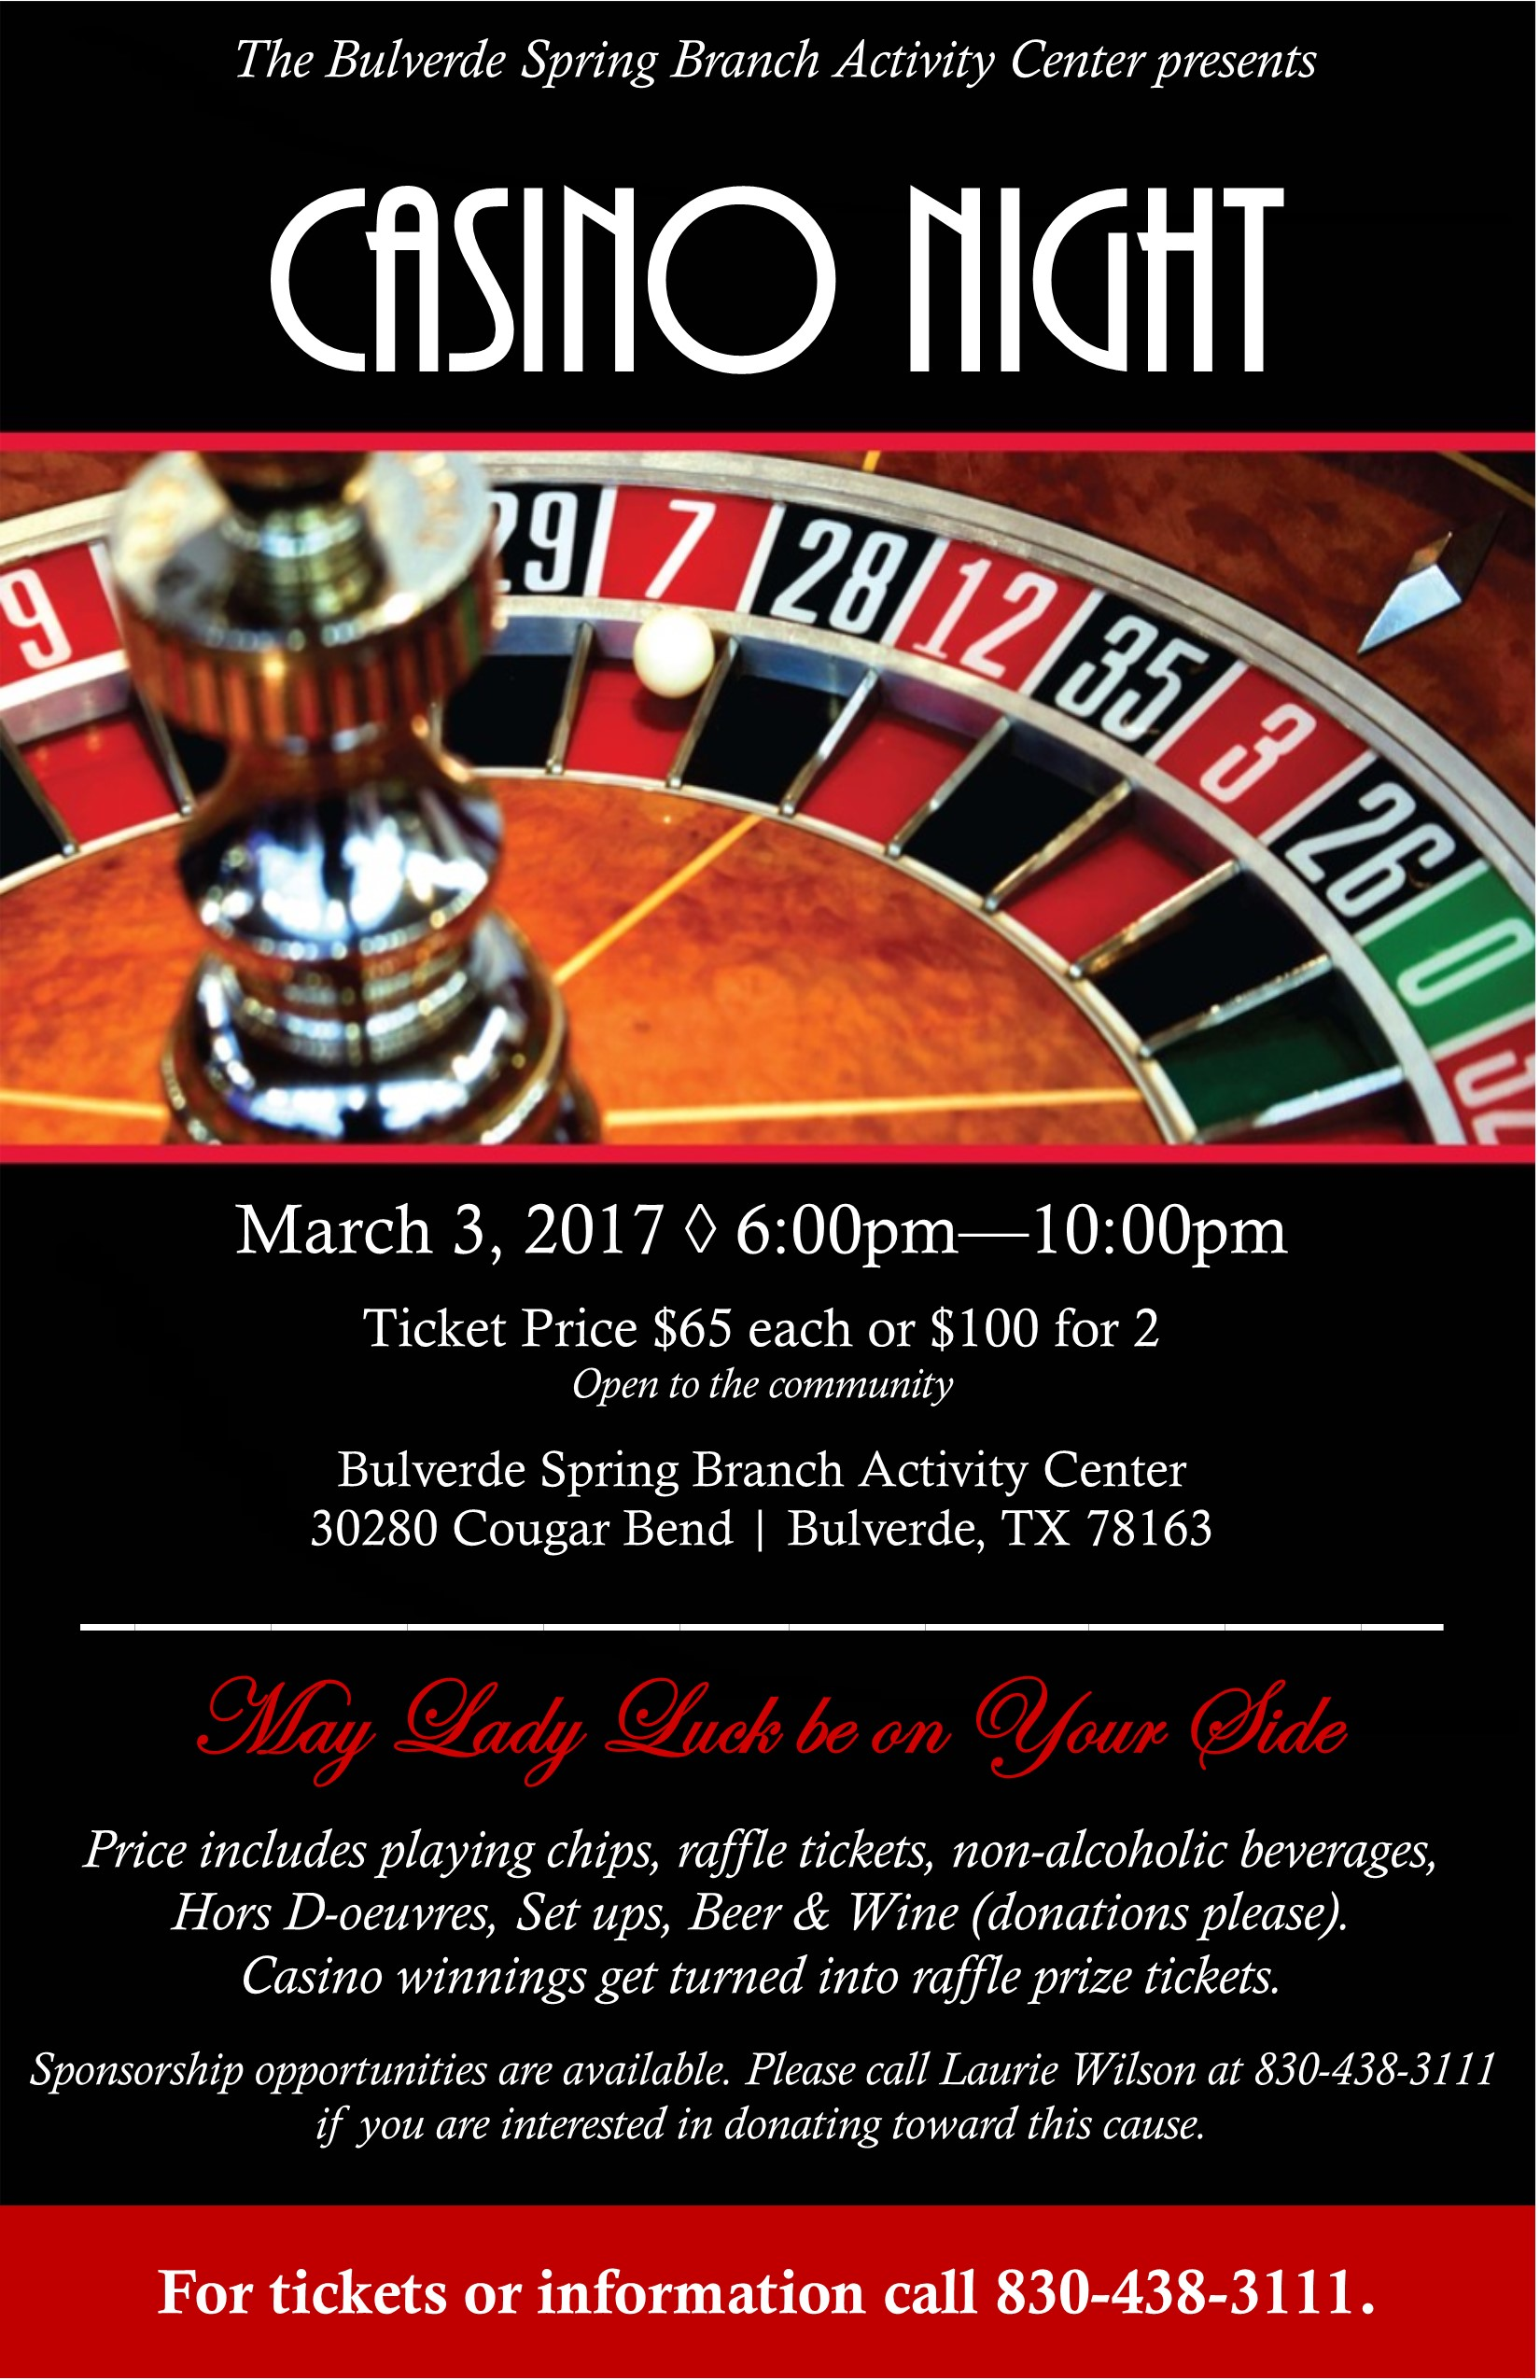 second annual casino night fundraiser benefiting the bsb